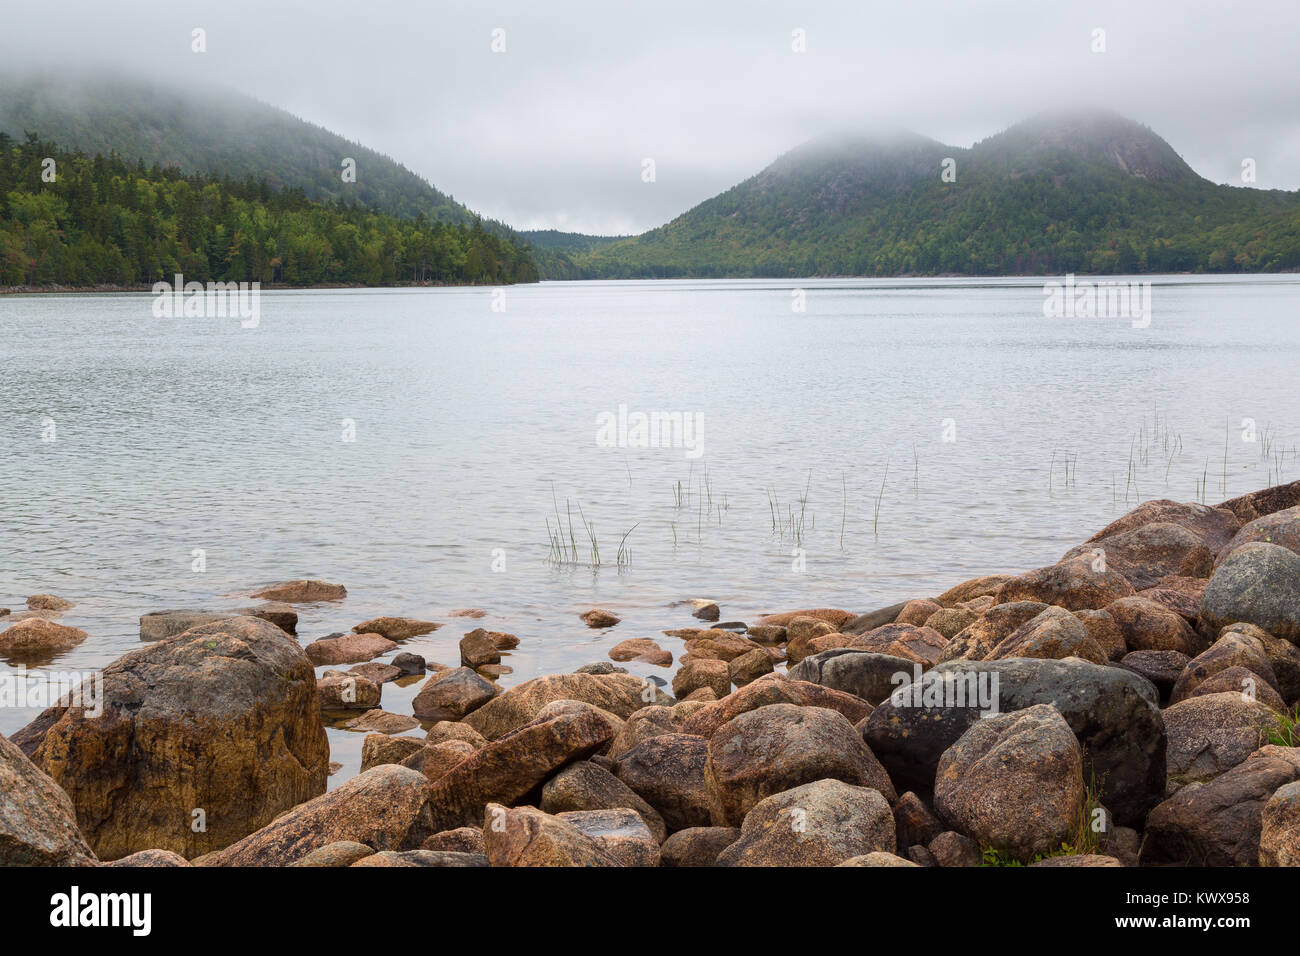 A heavy fog lifting from the calm waters of Jordan Pond on Mount Desert Island. Acadia National Park, Maine - Stock Image